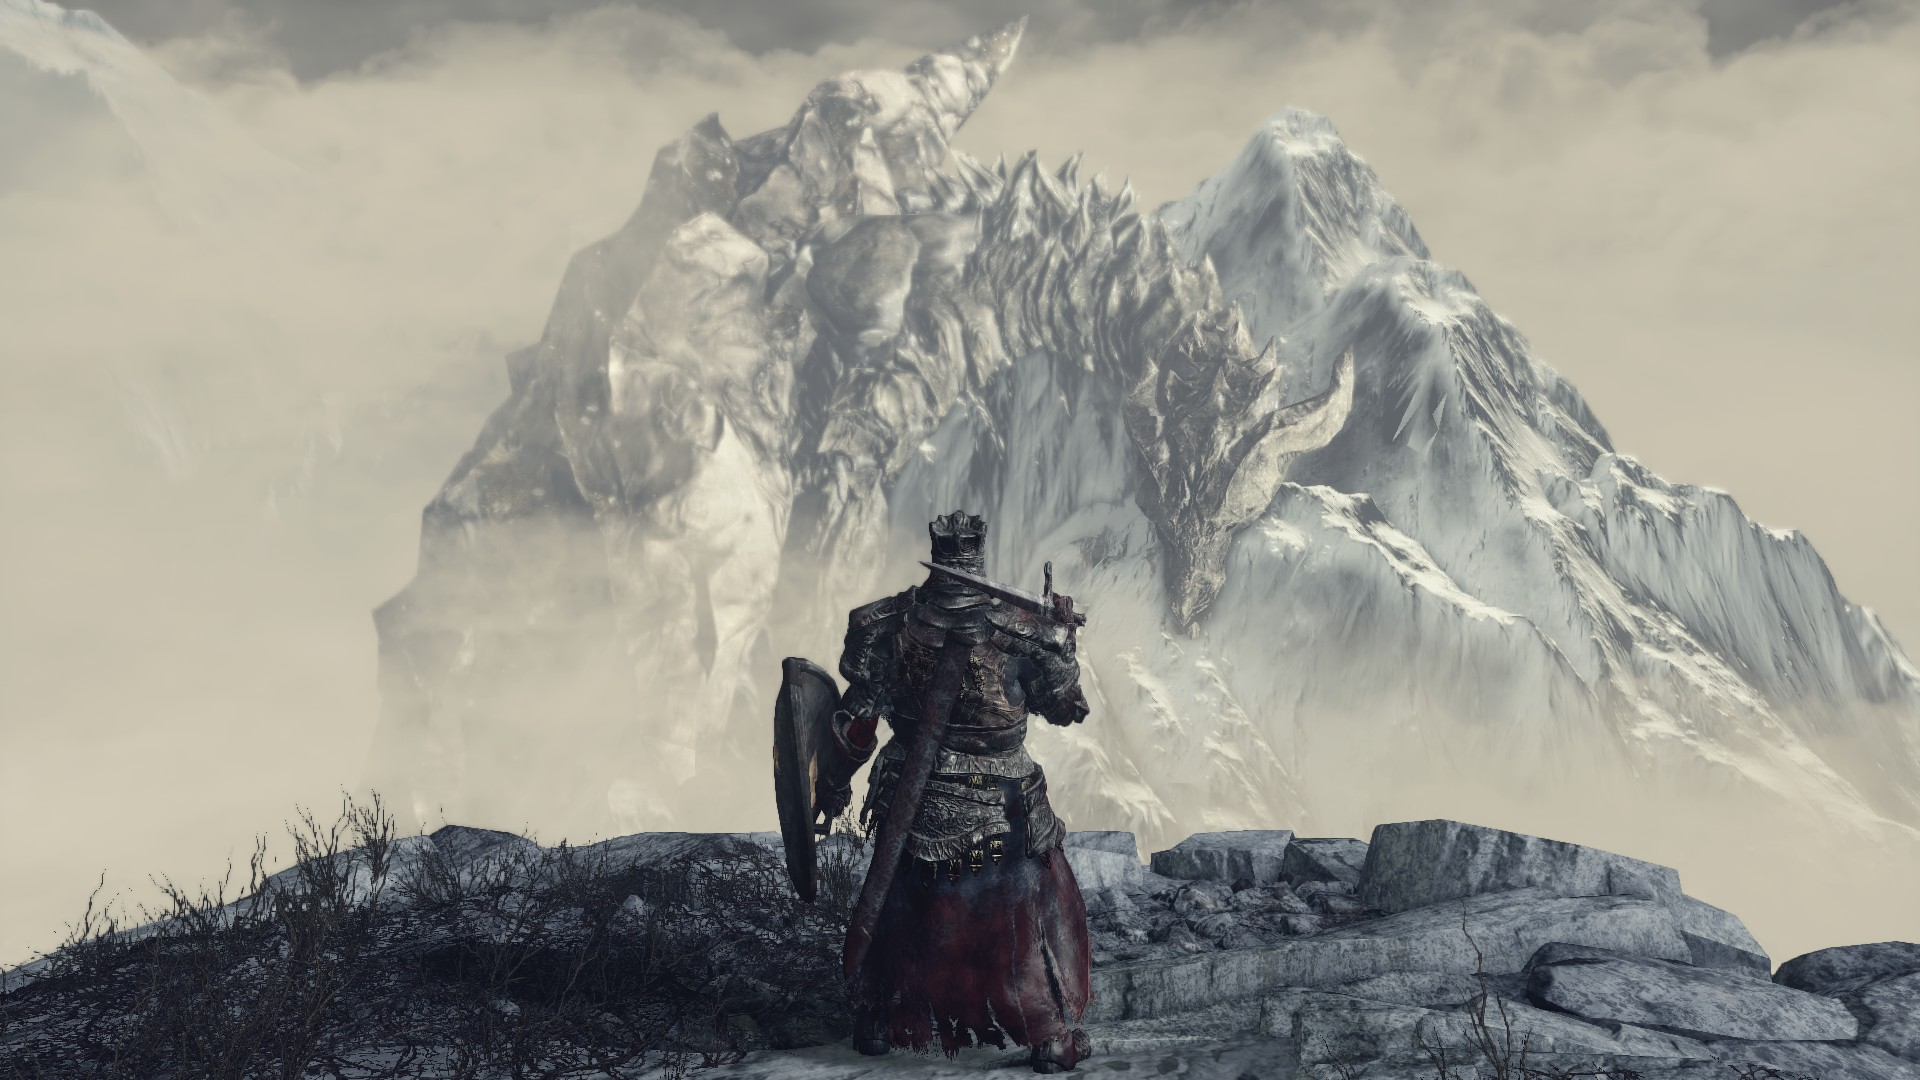 Dark Souls 3 Critical Path And Game Progress Route Where To Go